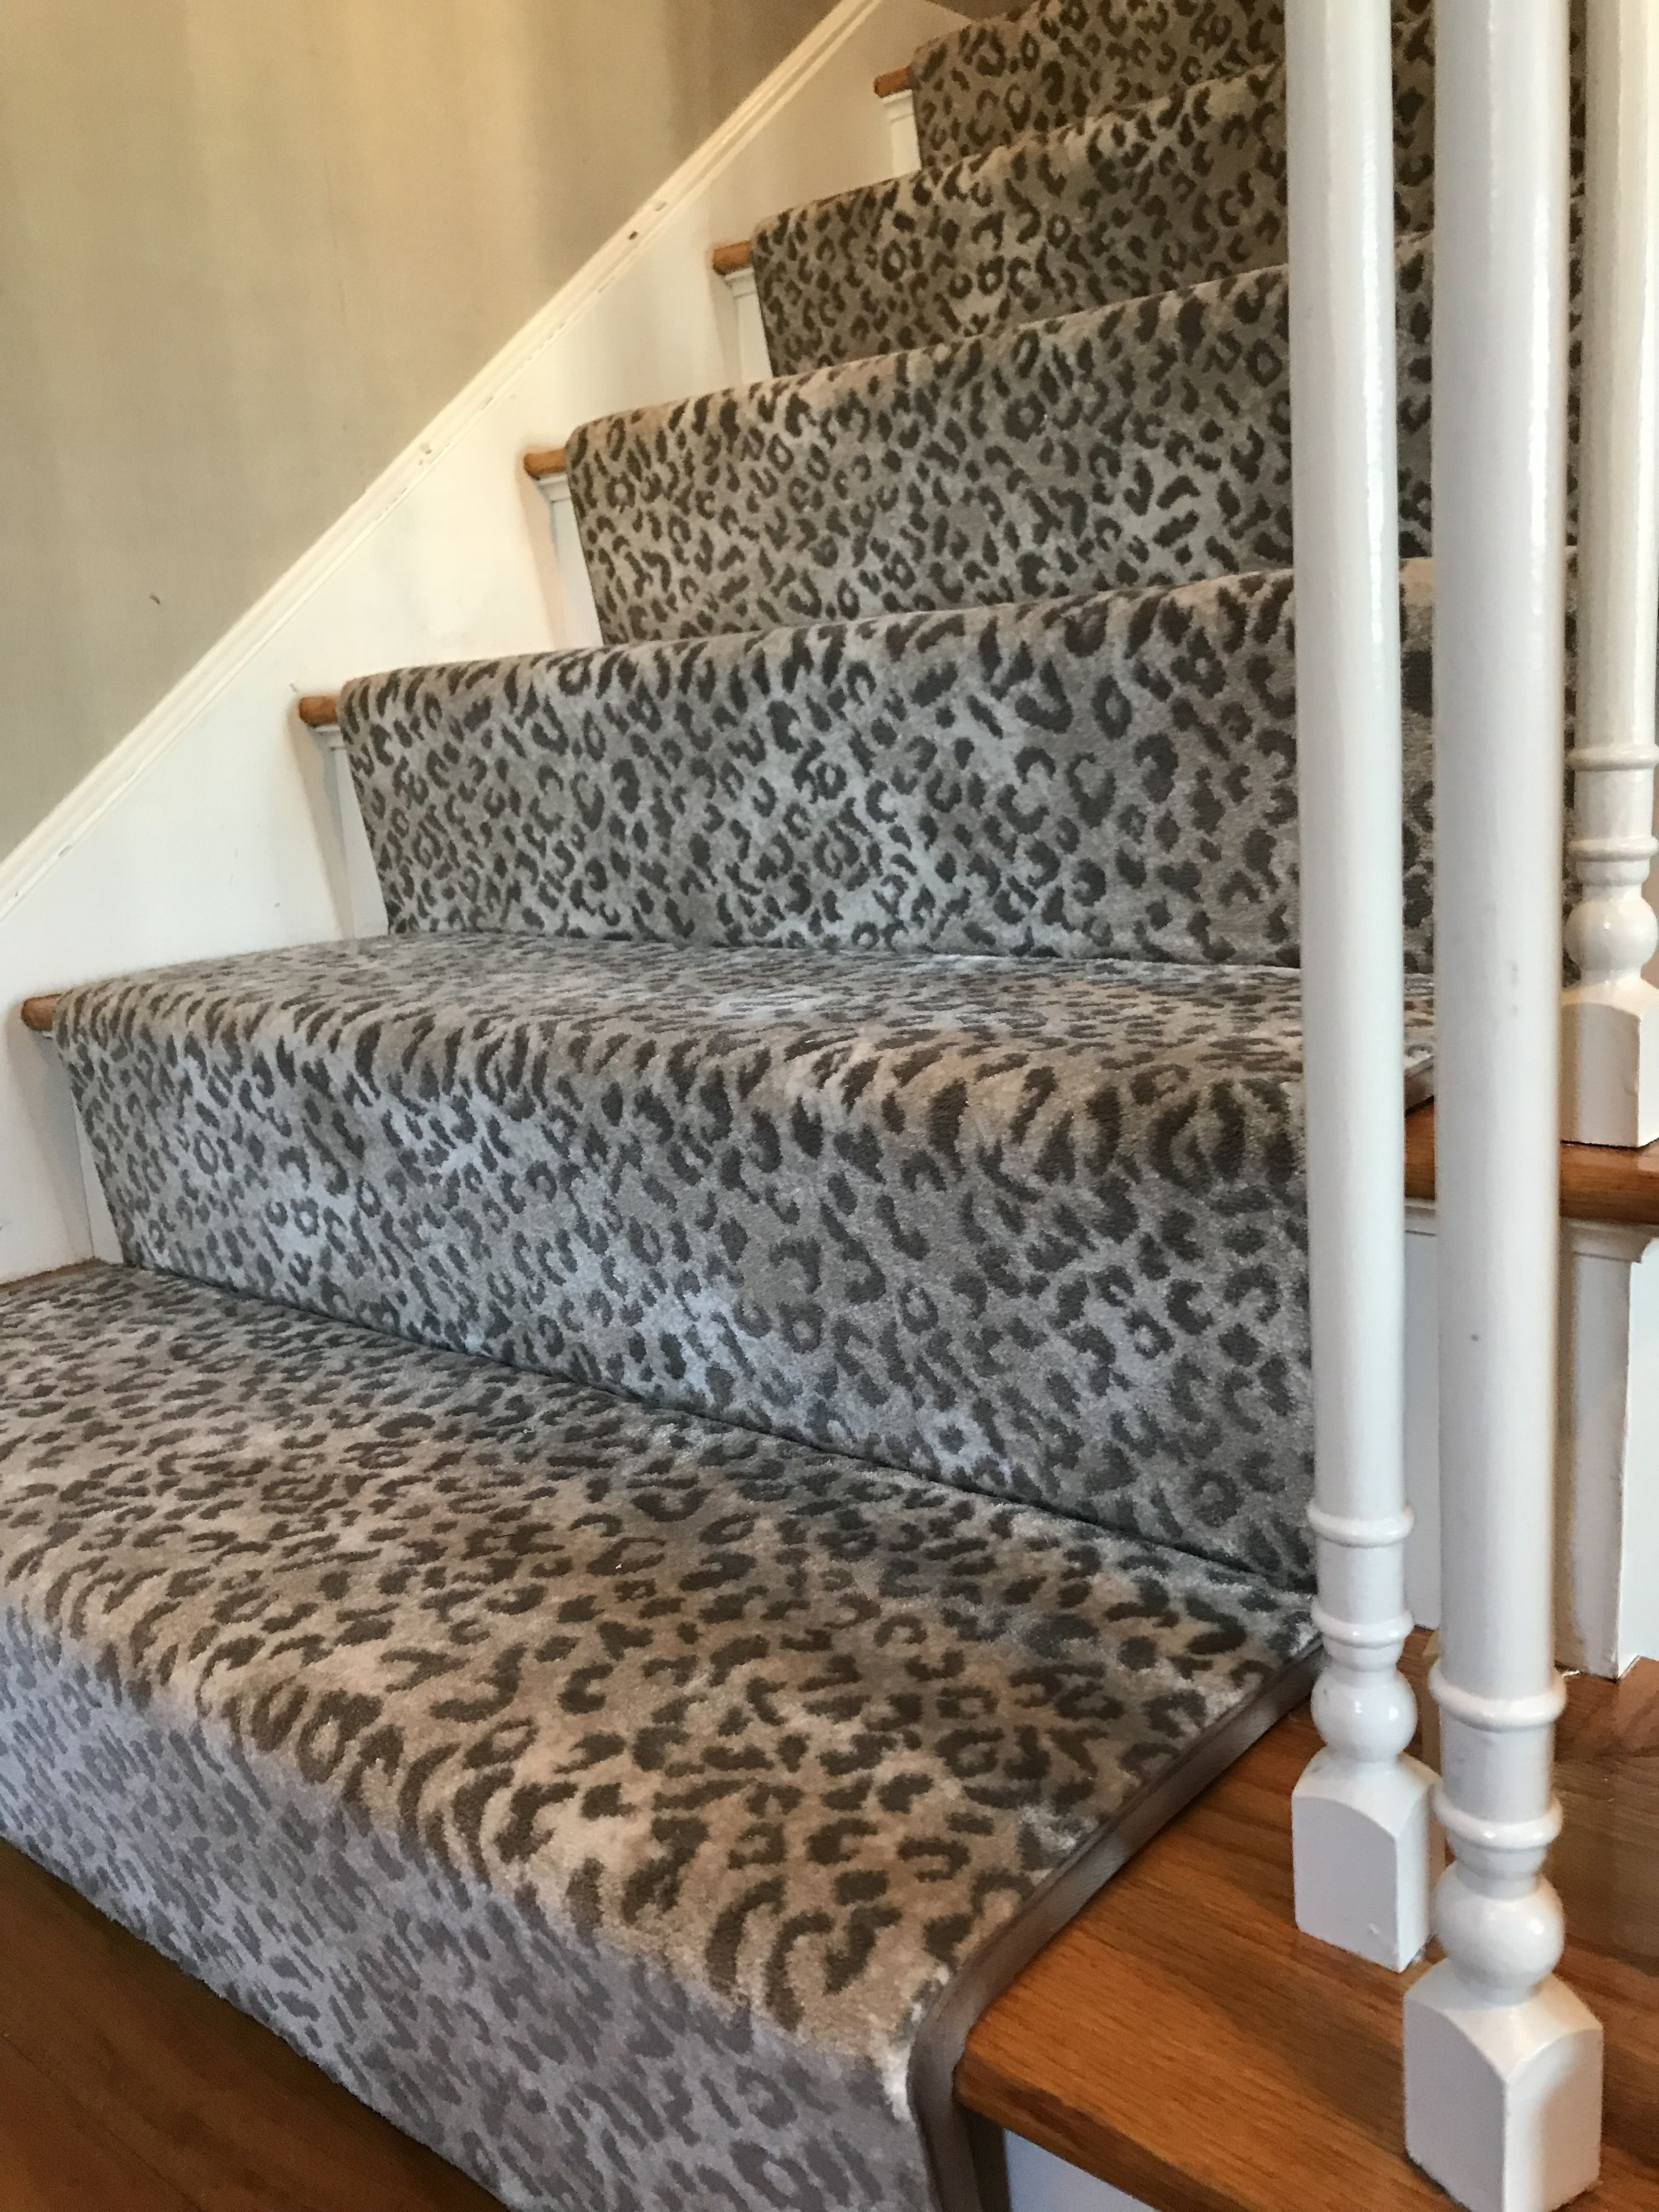 Pin By The Carpet Workroom On House Projects Stair Runner Carpet Buying Carpet Carpet Stairs